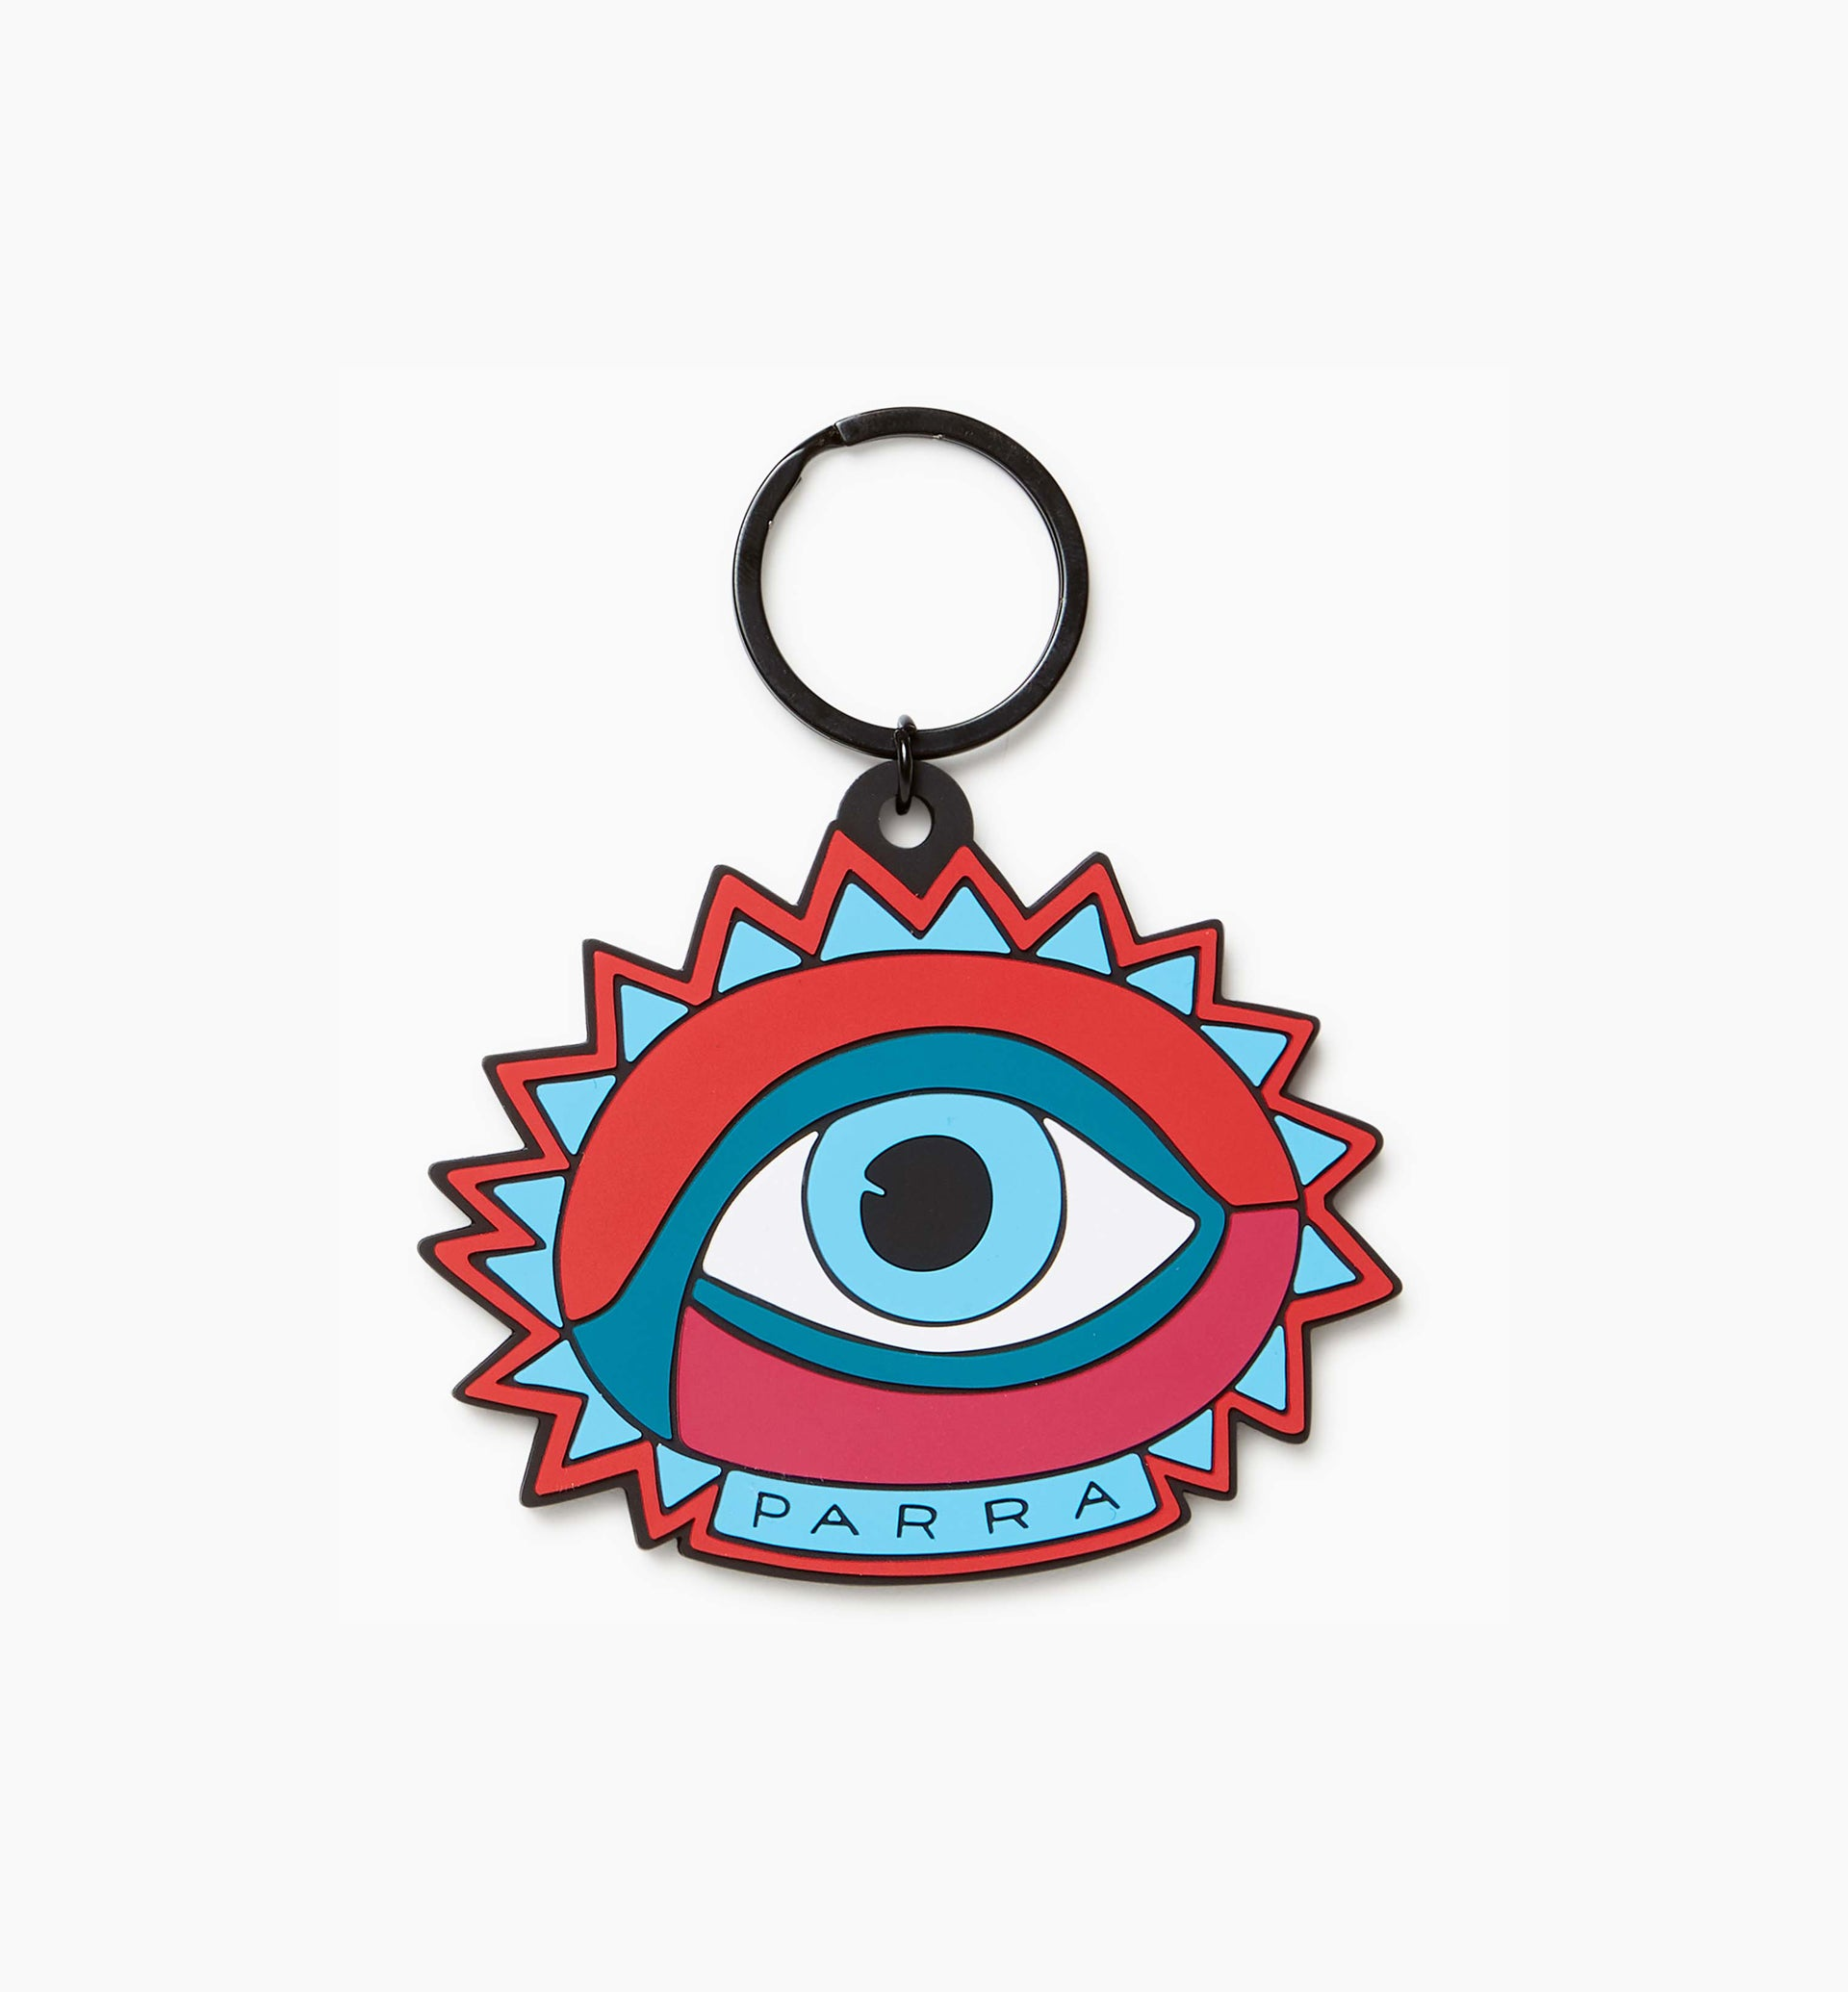 Parra - open eye key chain